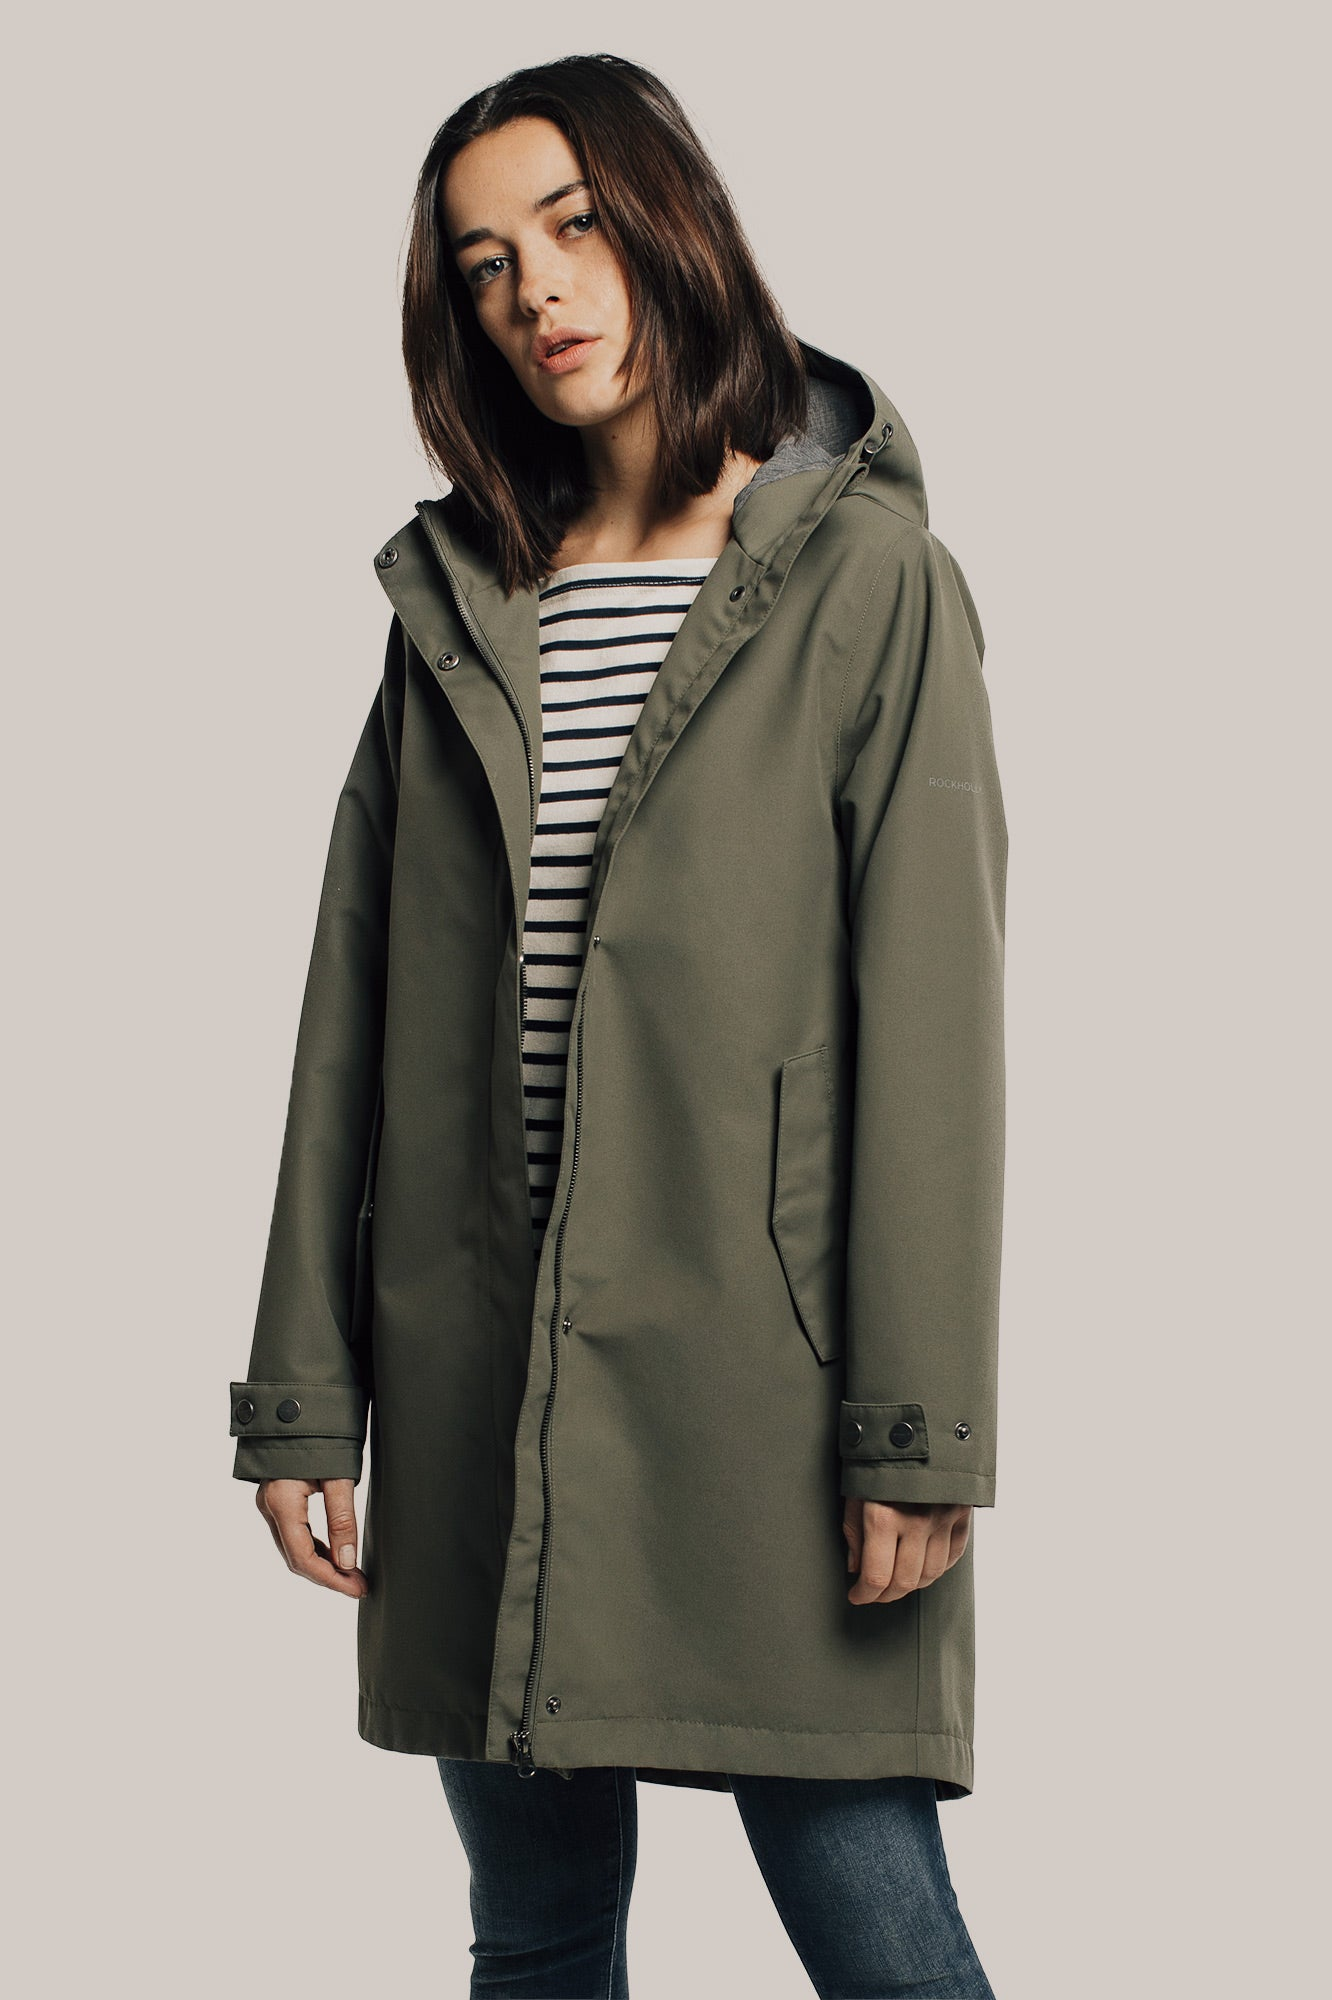 Rockholly Women's Long Transitional (Olive)